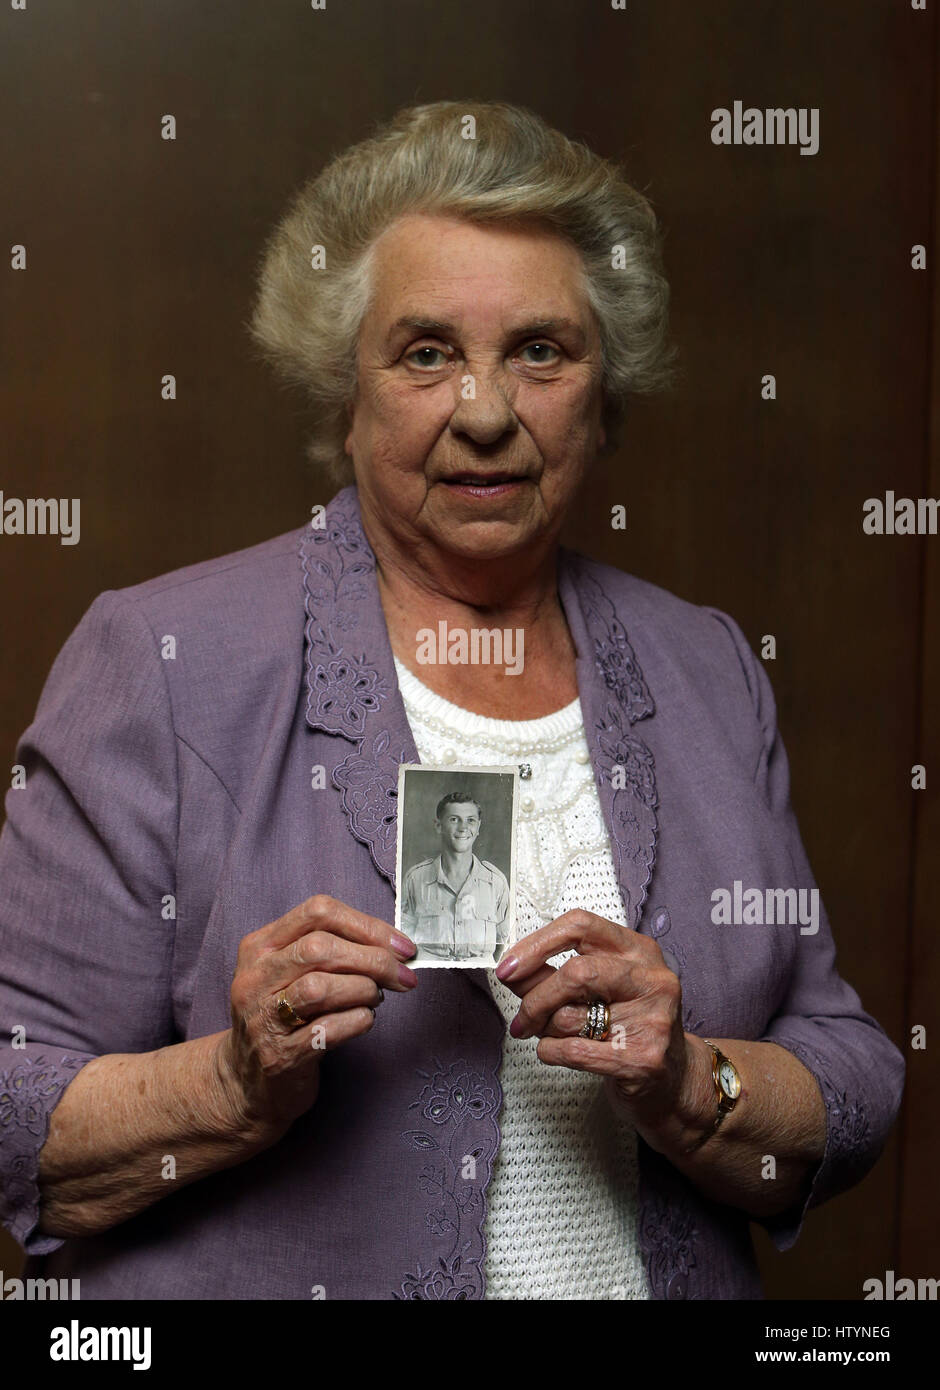 Her Late Night Cravings A Life S Checklist: Alma Williams Holds A Photograph Of Her Late Brother Lance